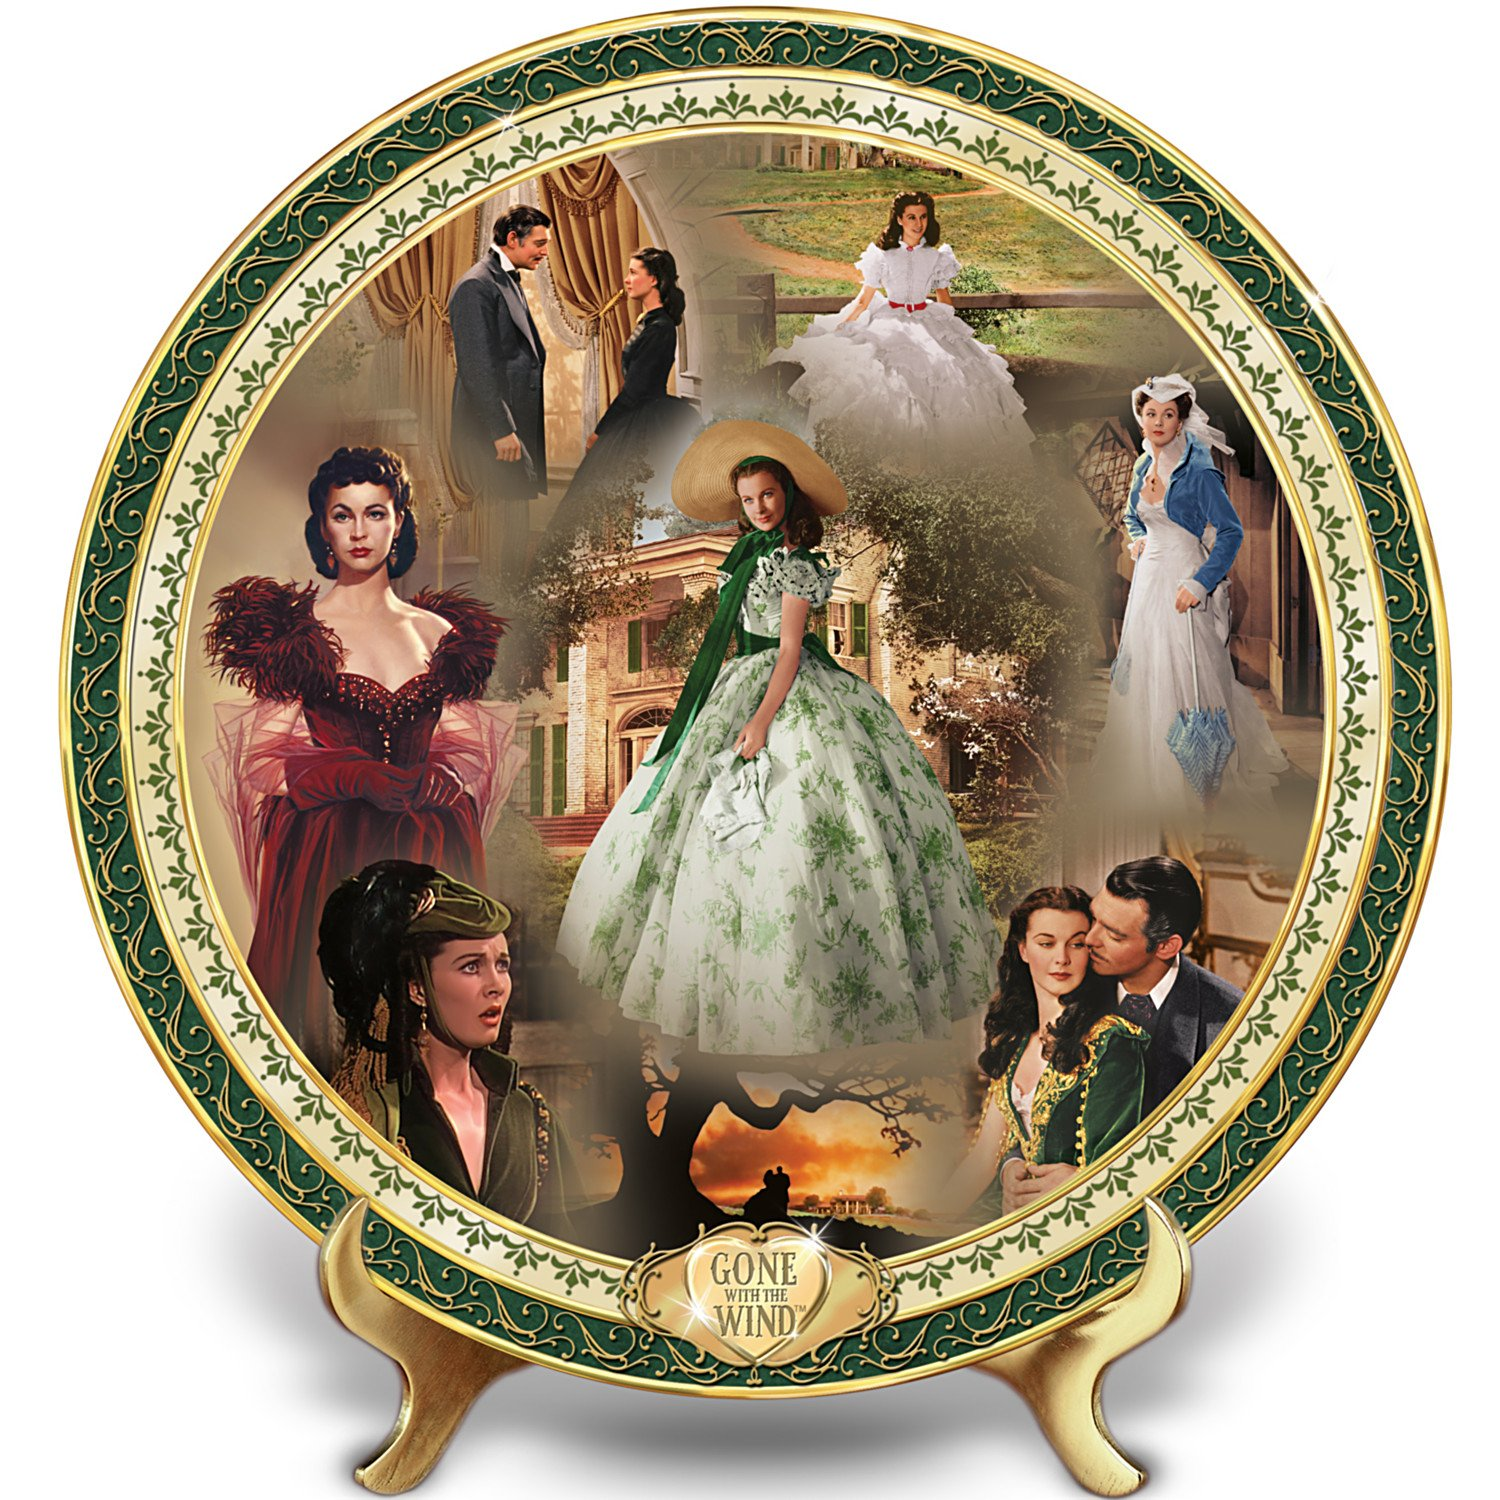 Gone With The Wind 75th Anniversary Porcelain Masterpiece Plateby The Bradford Exchange